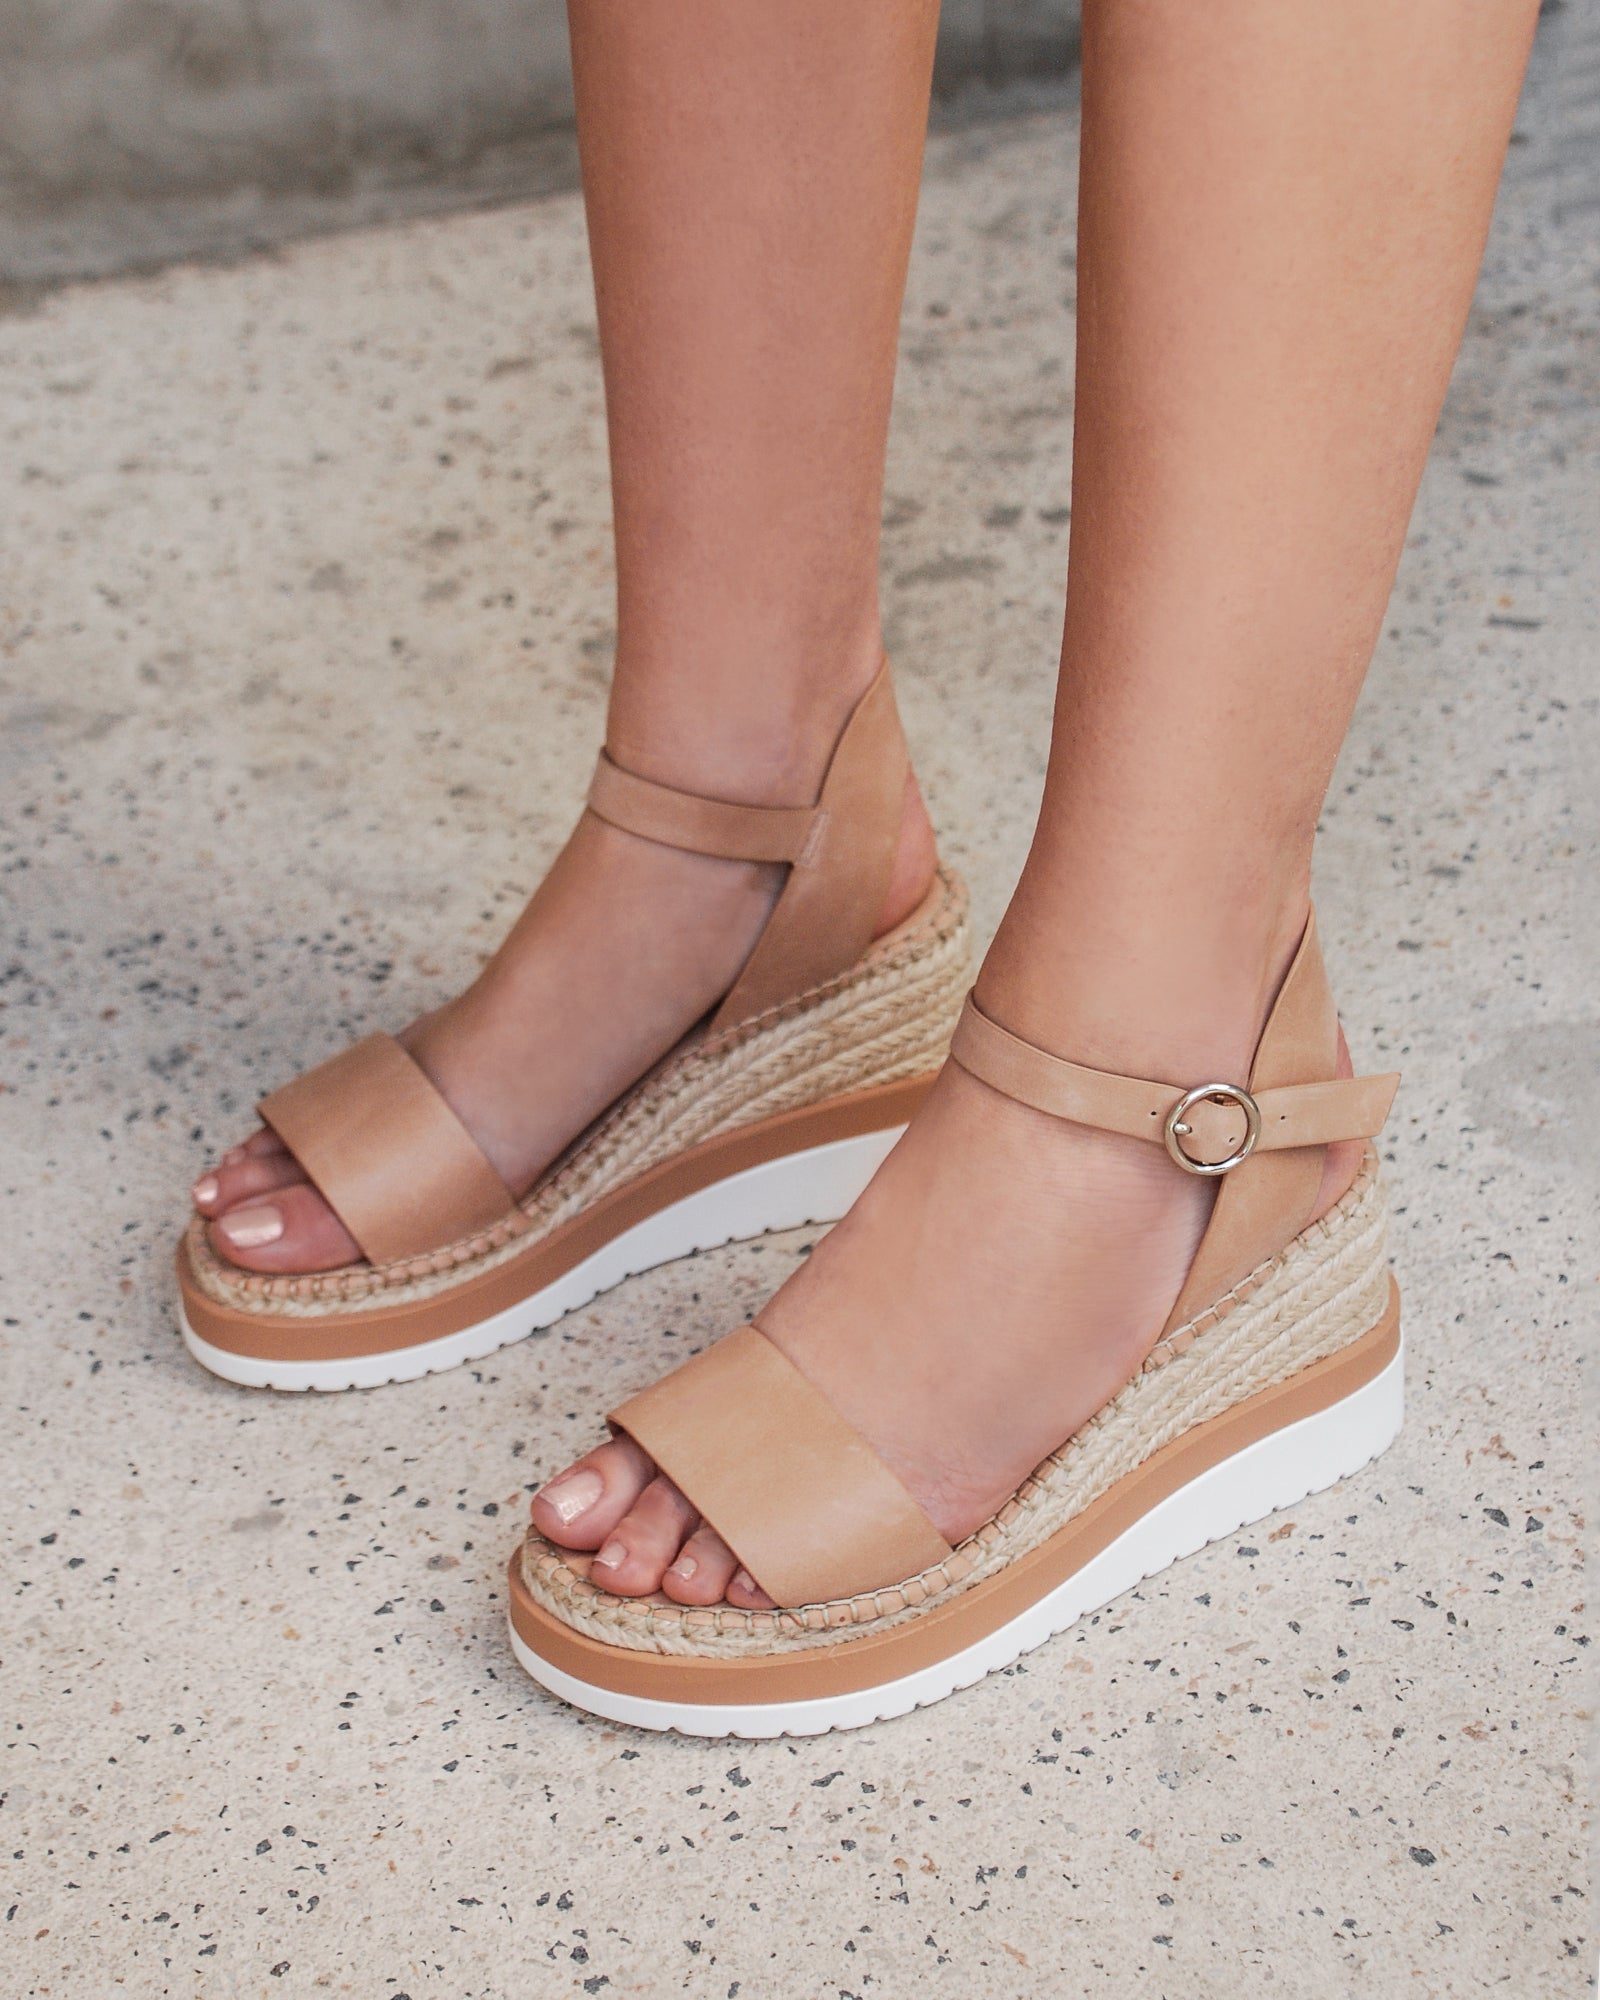 KANDY MID HEEL WEDGE ESPADRILLES NATURAL LEATHER